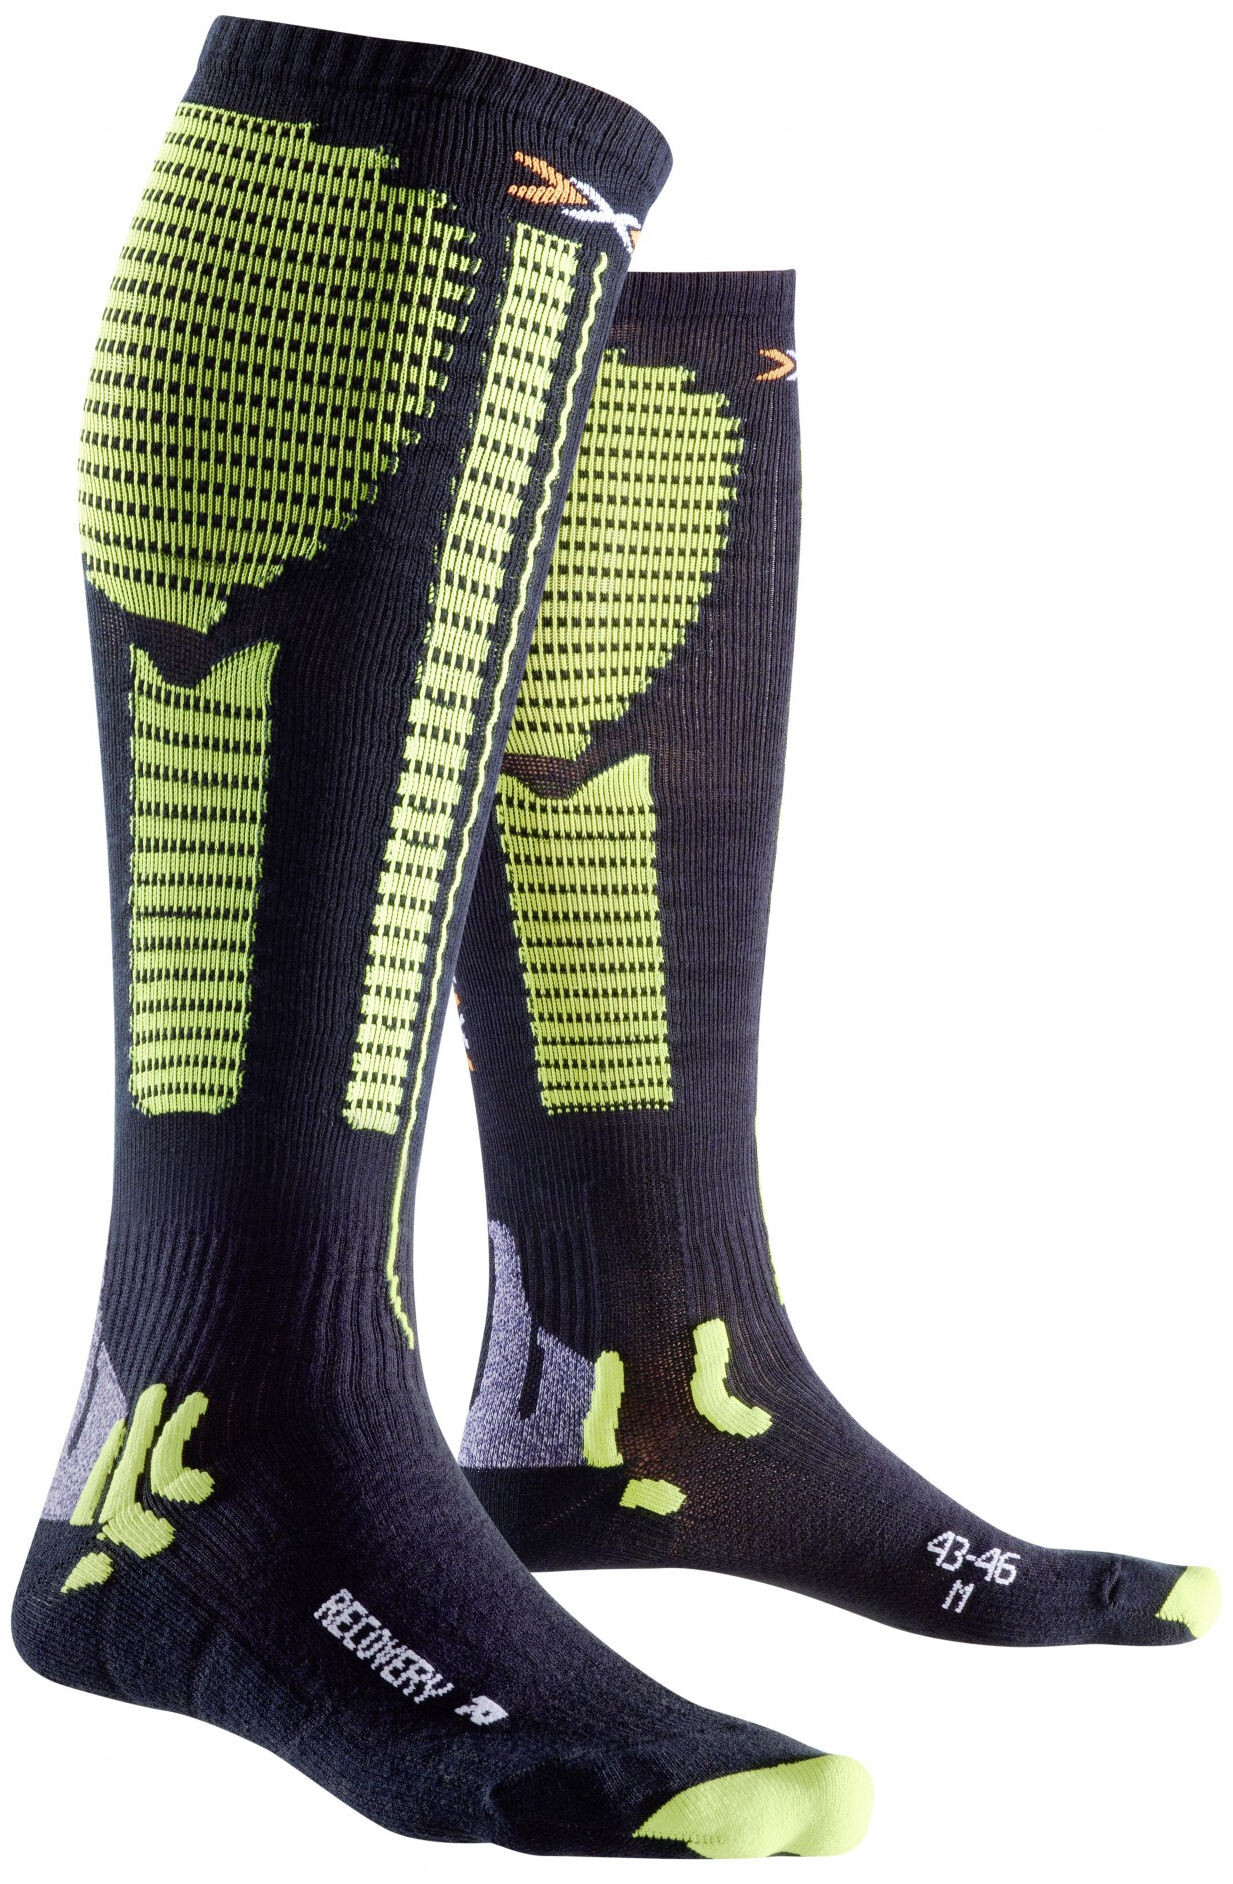 X-Bionic Precuperation Recovery Socks Herrer, black/acid green | Compression